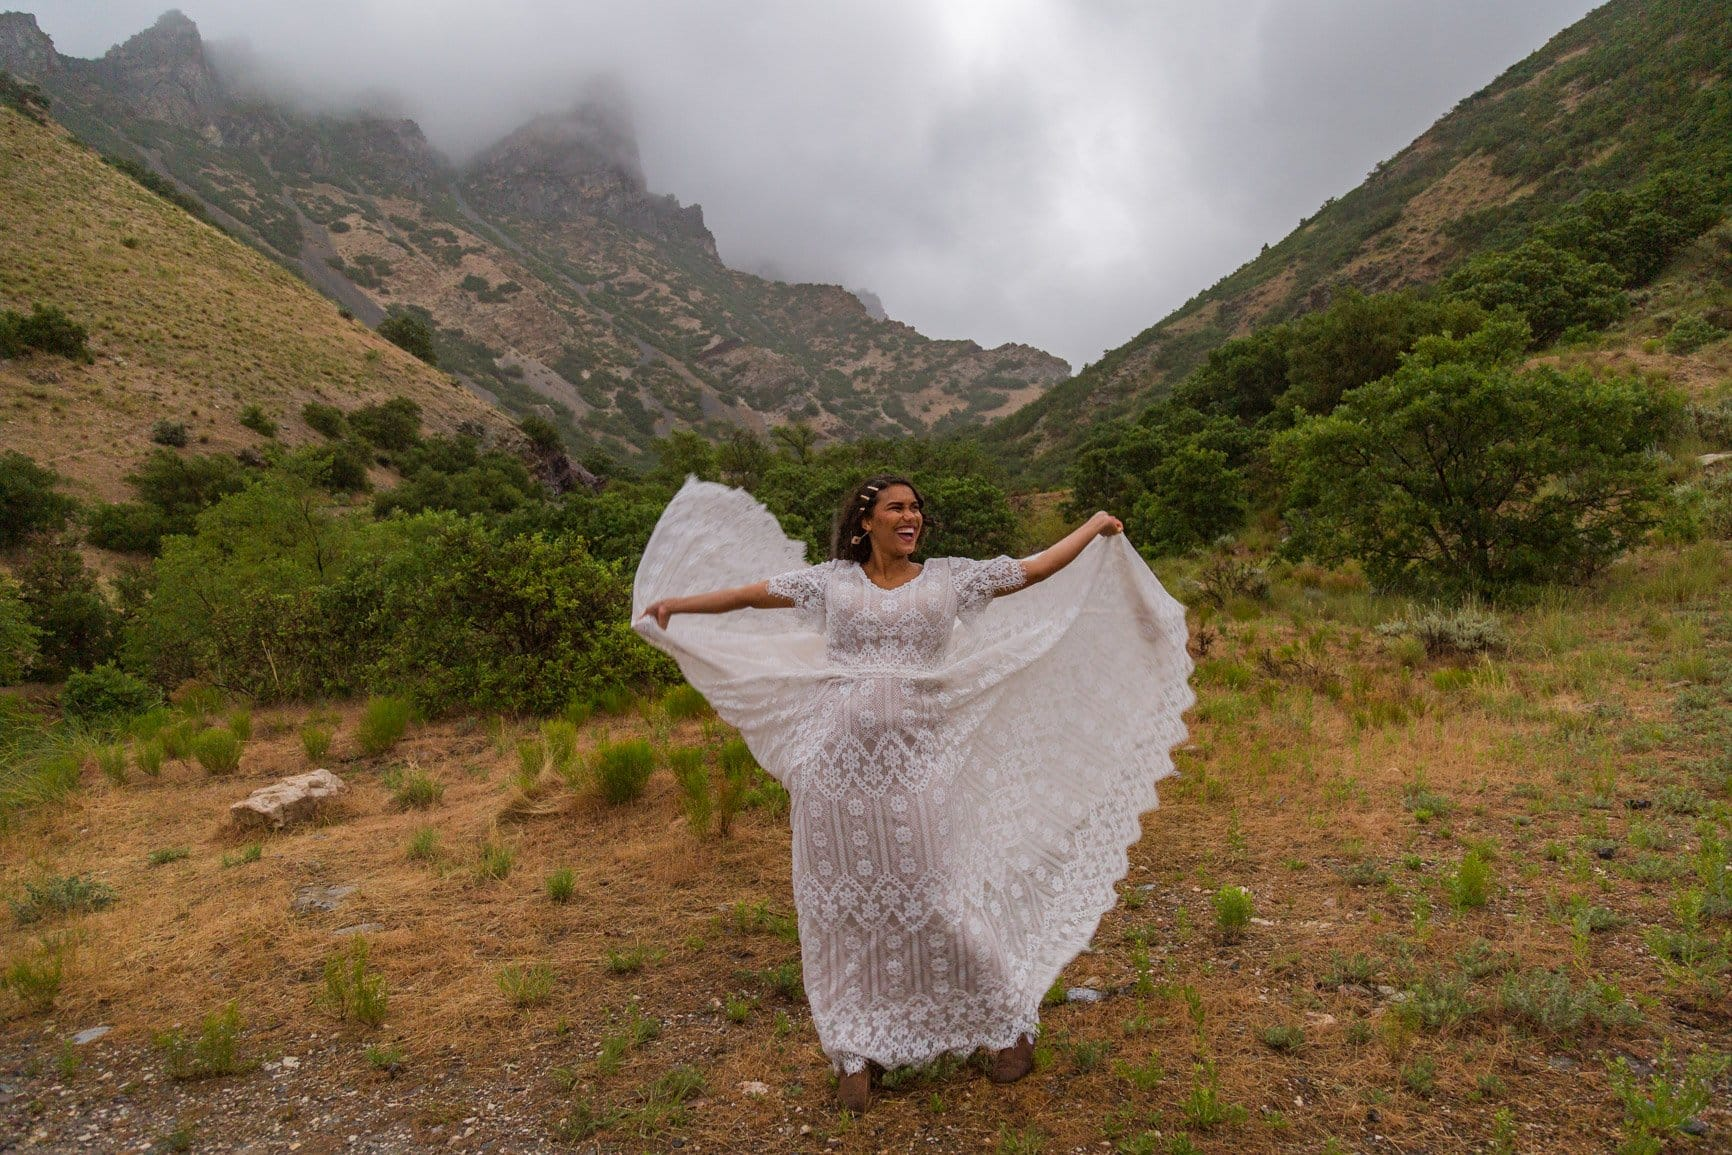 a women dances with her dress as the wind whips around her